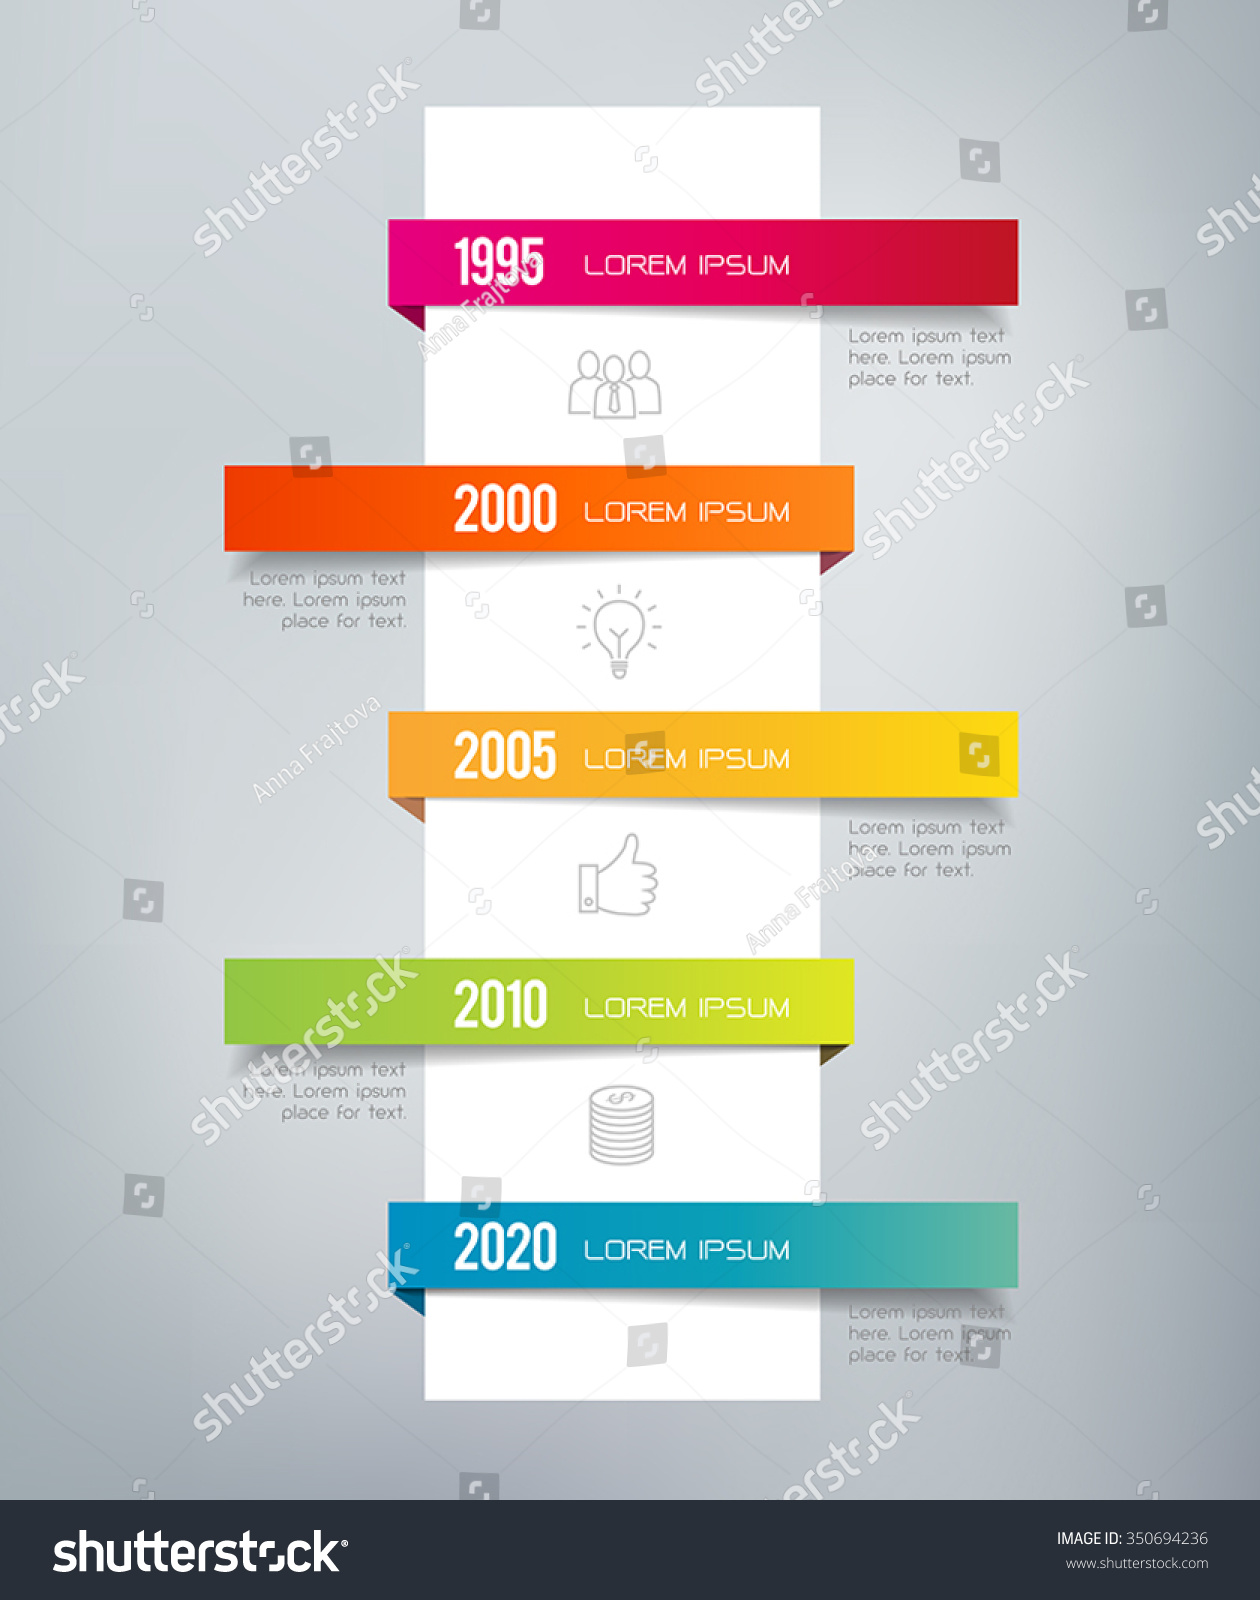 infographic timeline can illustrate a strategy a workflow a sequence of events